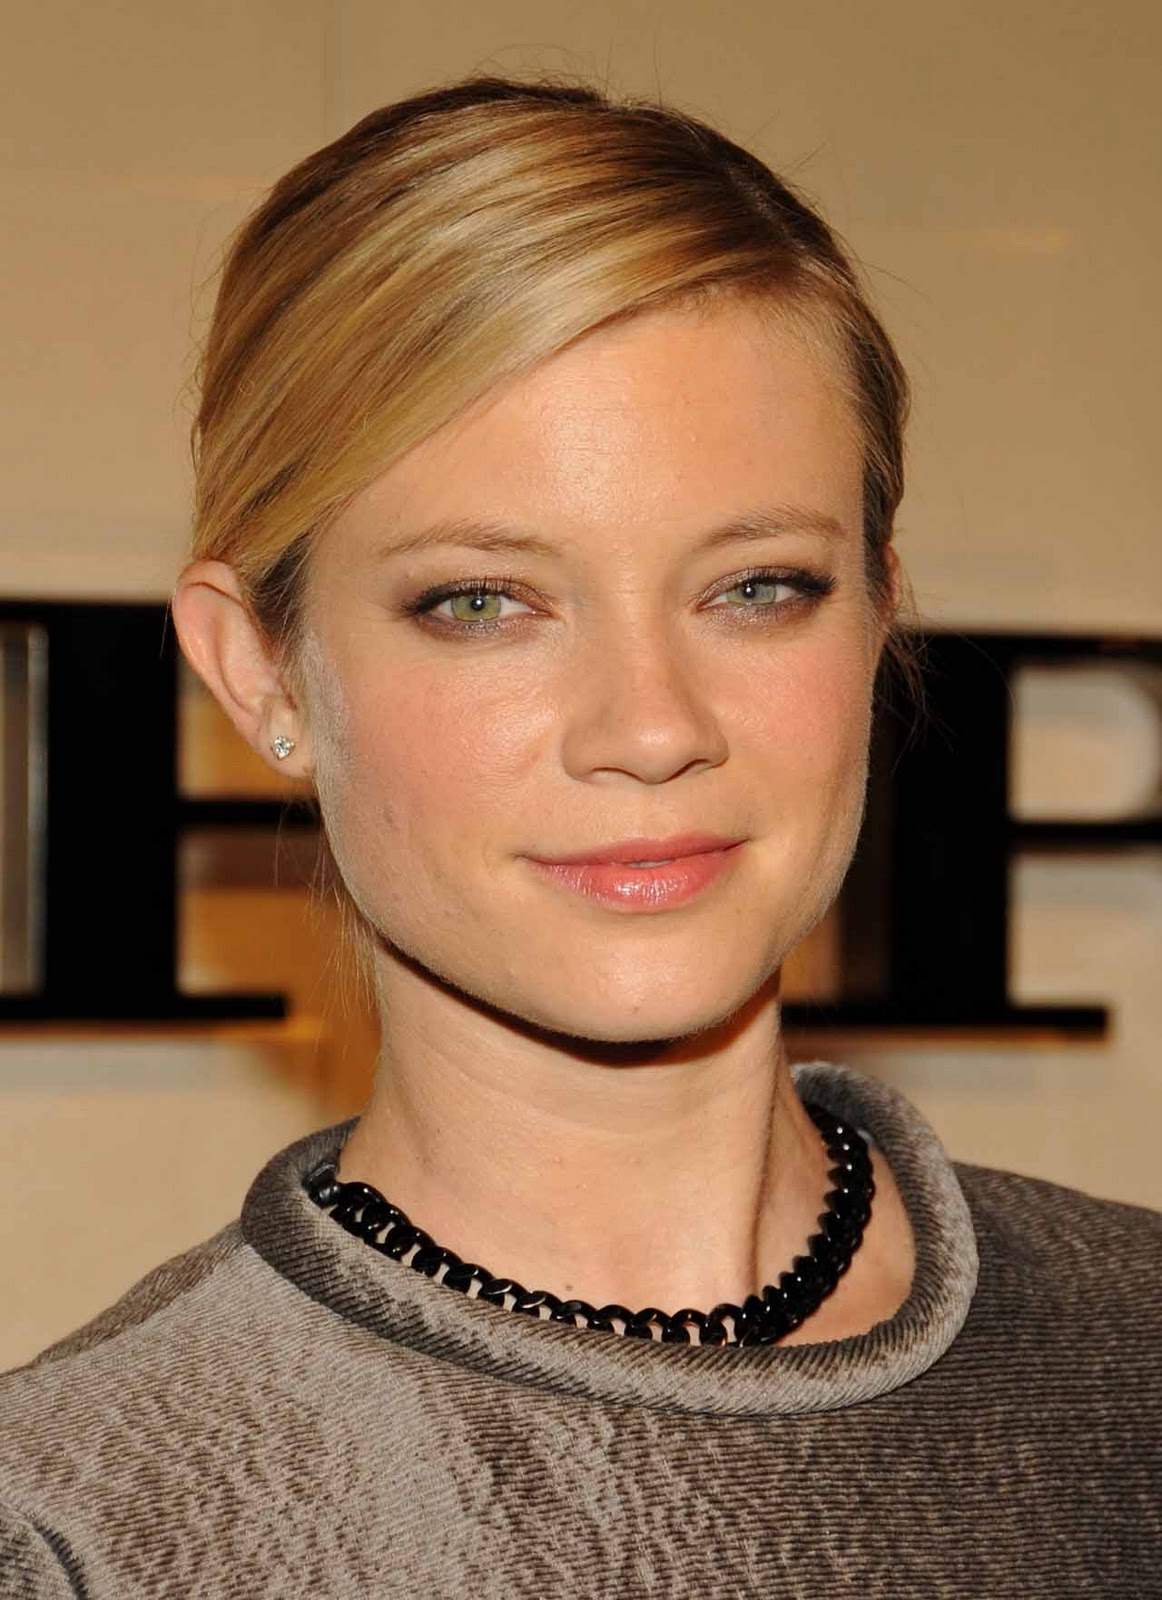 http://4.bp.blogspot.com/-npuEJ8_eUuI/Tv6xcRnGhvI/AAAAAAAAF-s/xMywH7DEcDc/s1600/amy-smart-new-2012-hd.jpg